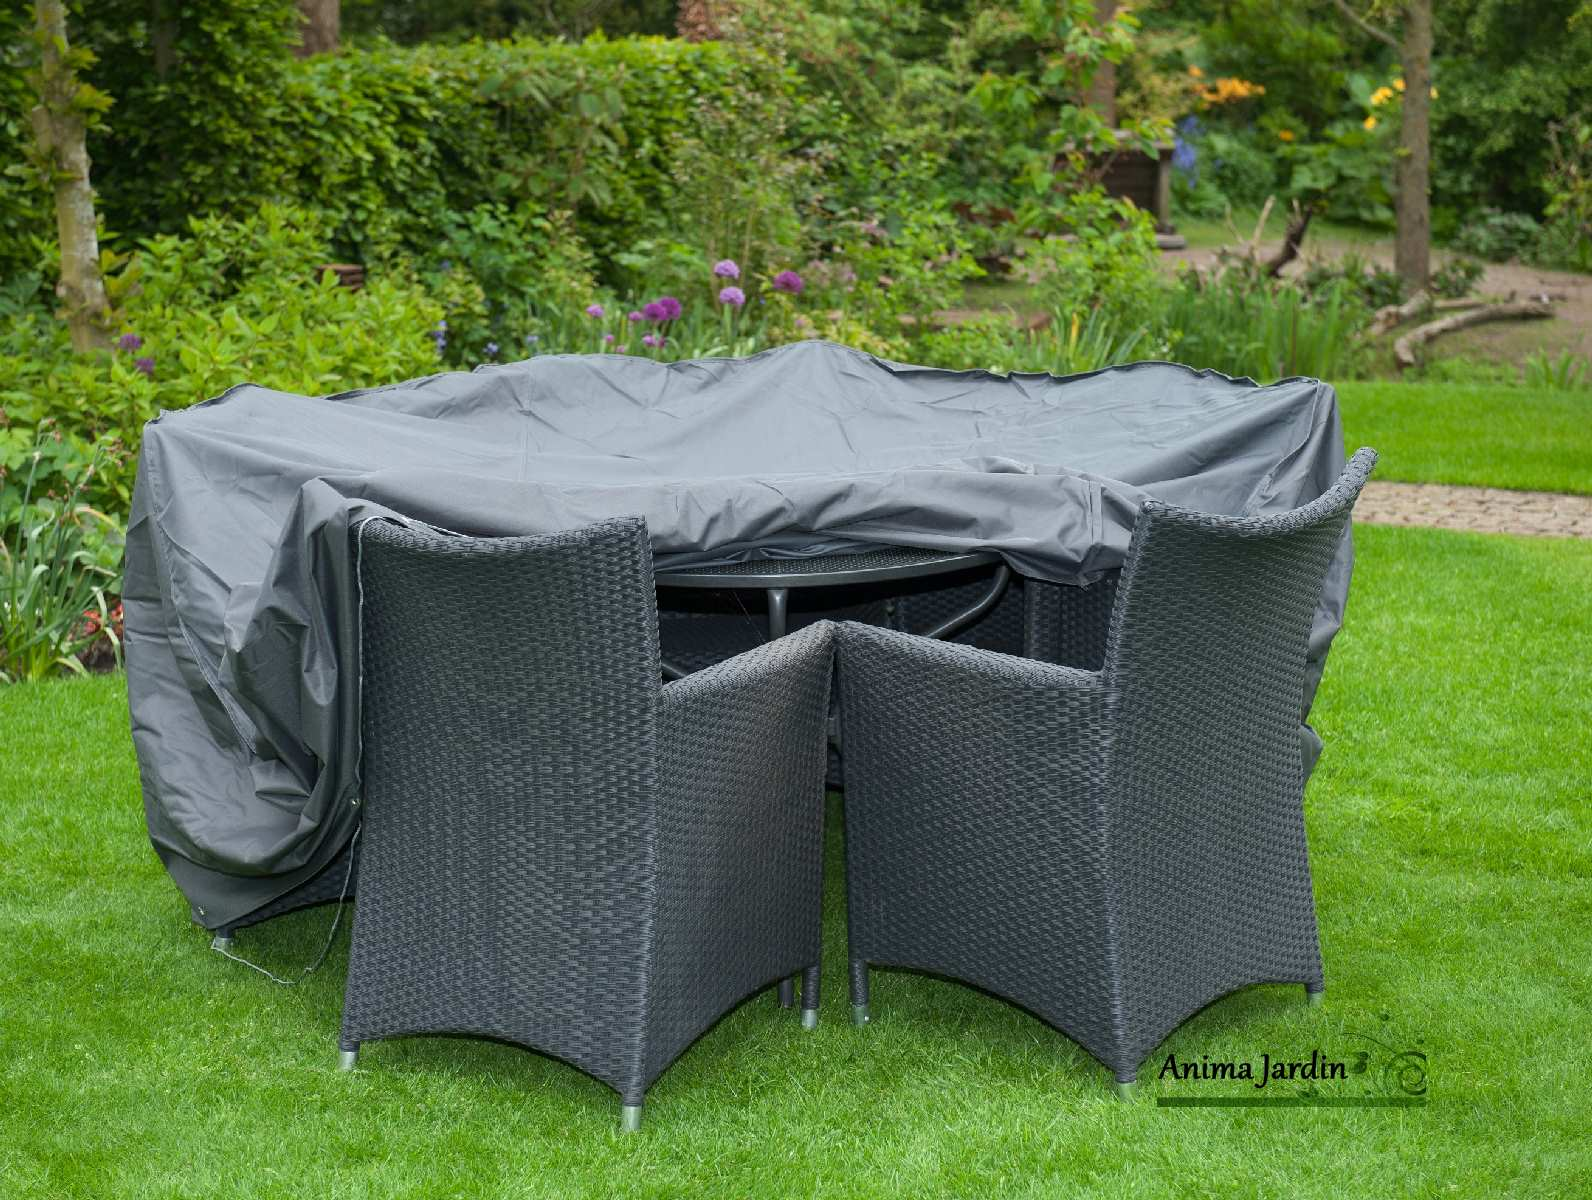 Housse de protection salon de jardin table ronde imperm able - Housse de protection pour salon de jardin ...